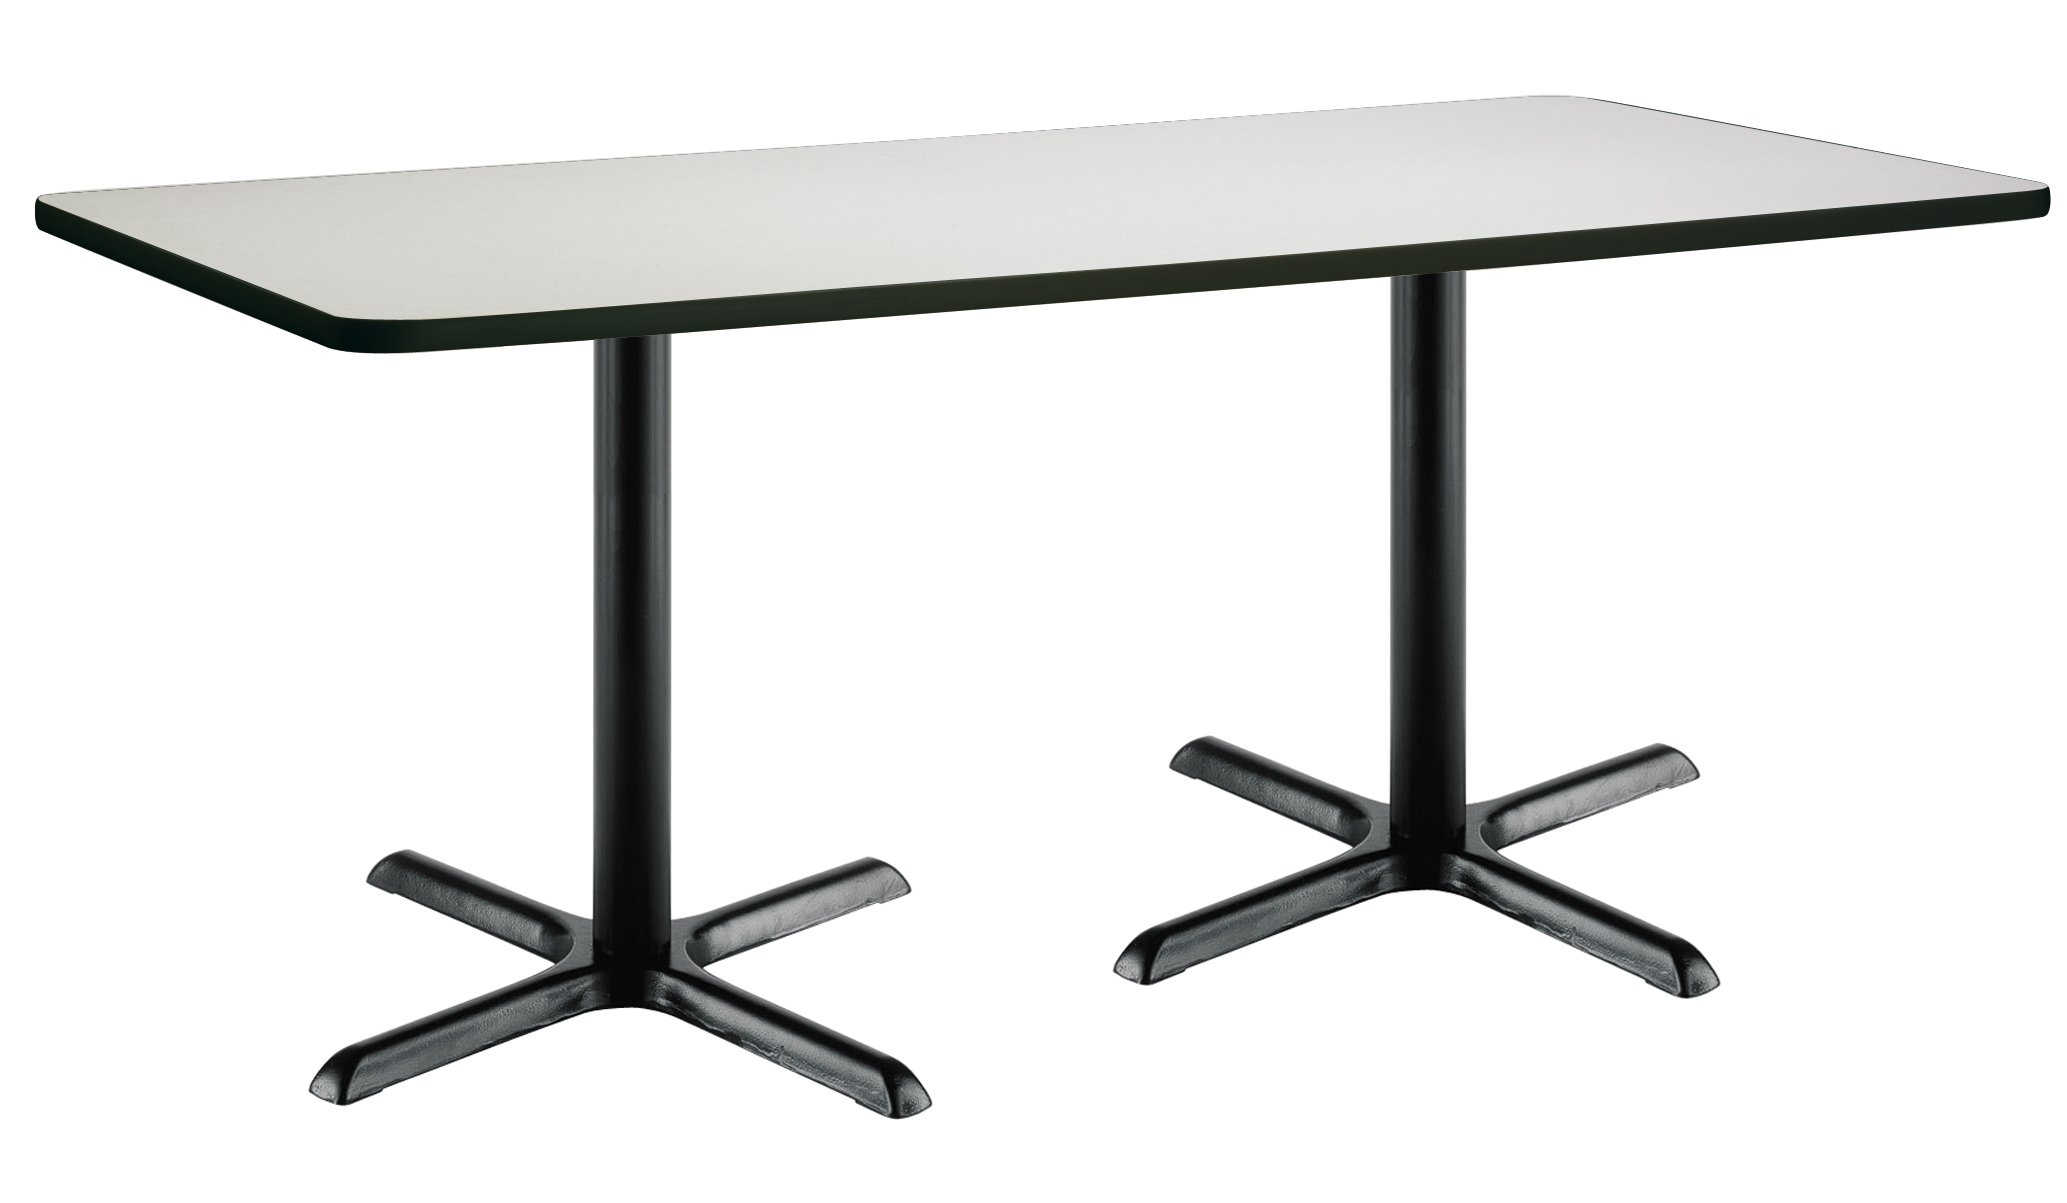 36'' x 72'' Pedestal Table with Crisp Linen Top, Black X-Base by KFI Seating